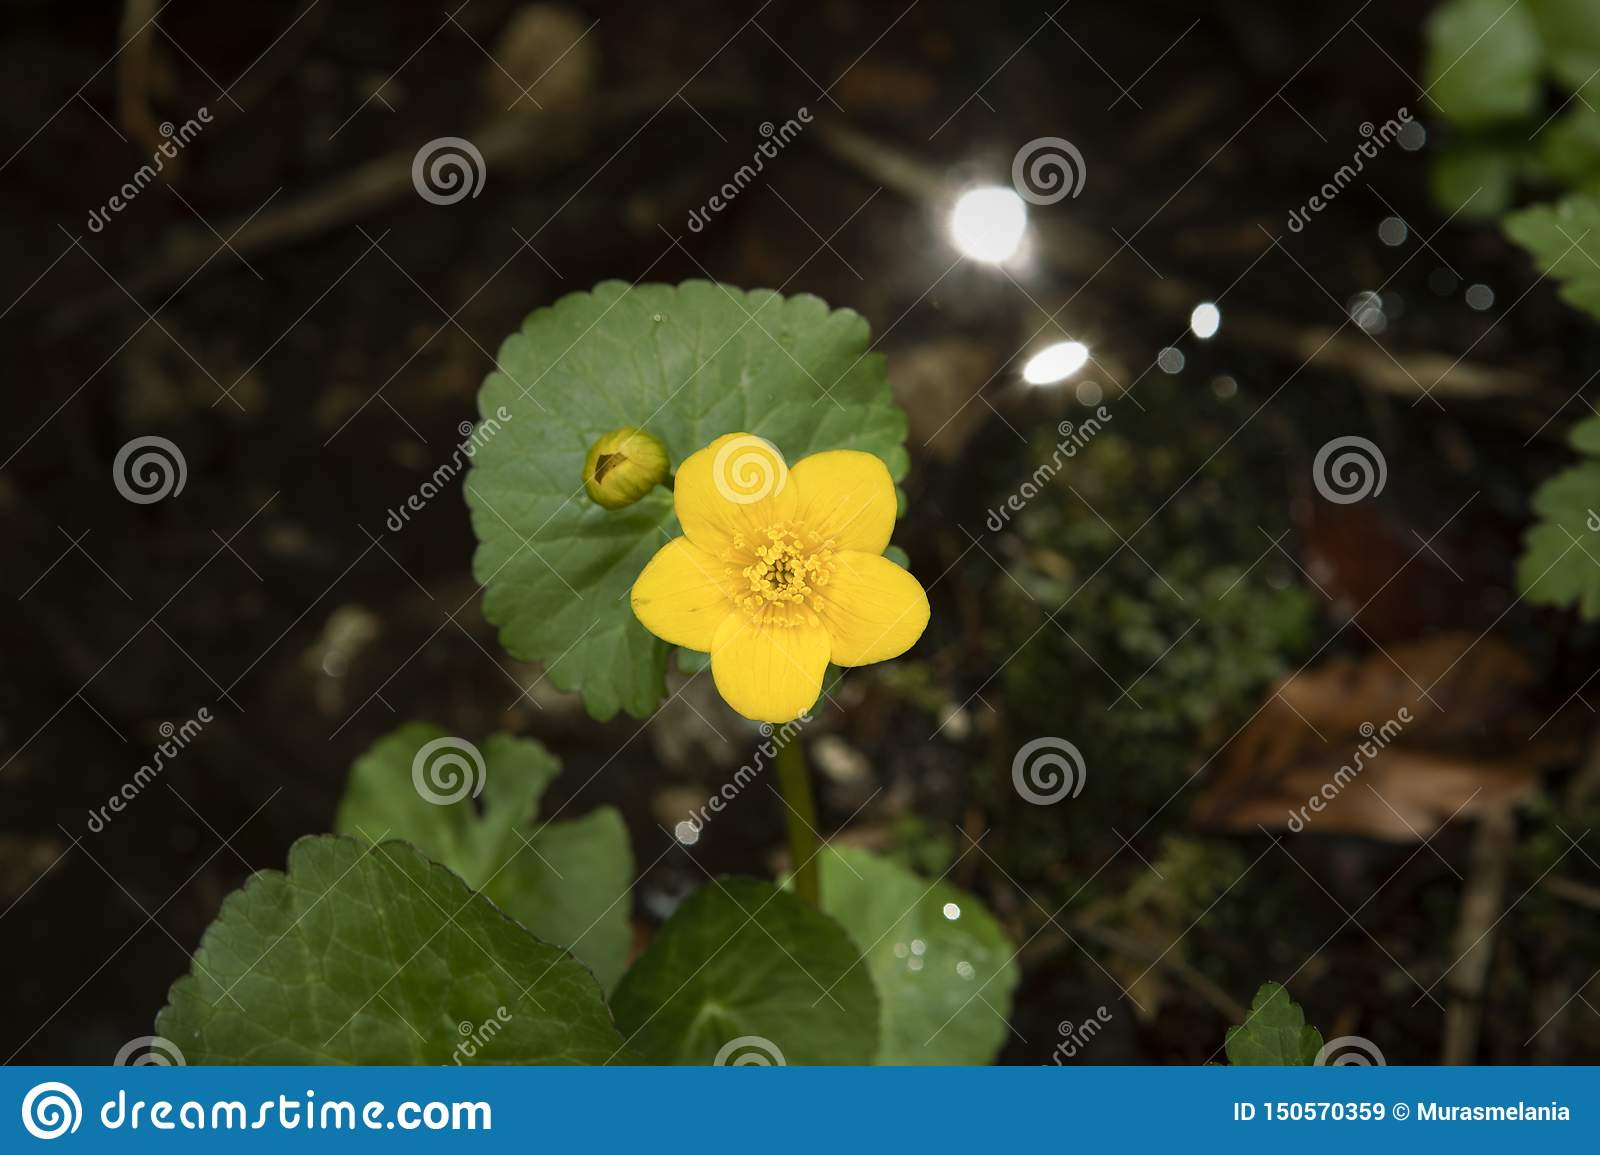 Kingcup flower, Marsh Marigold Caltha palustris in water. Yellow wild flower on dark background.